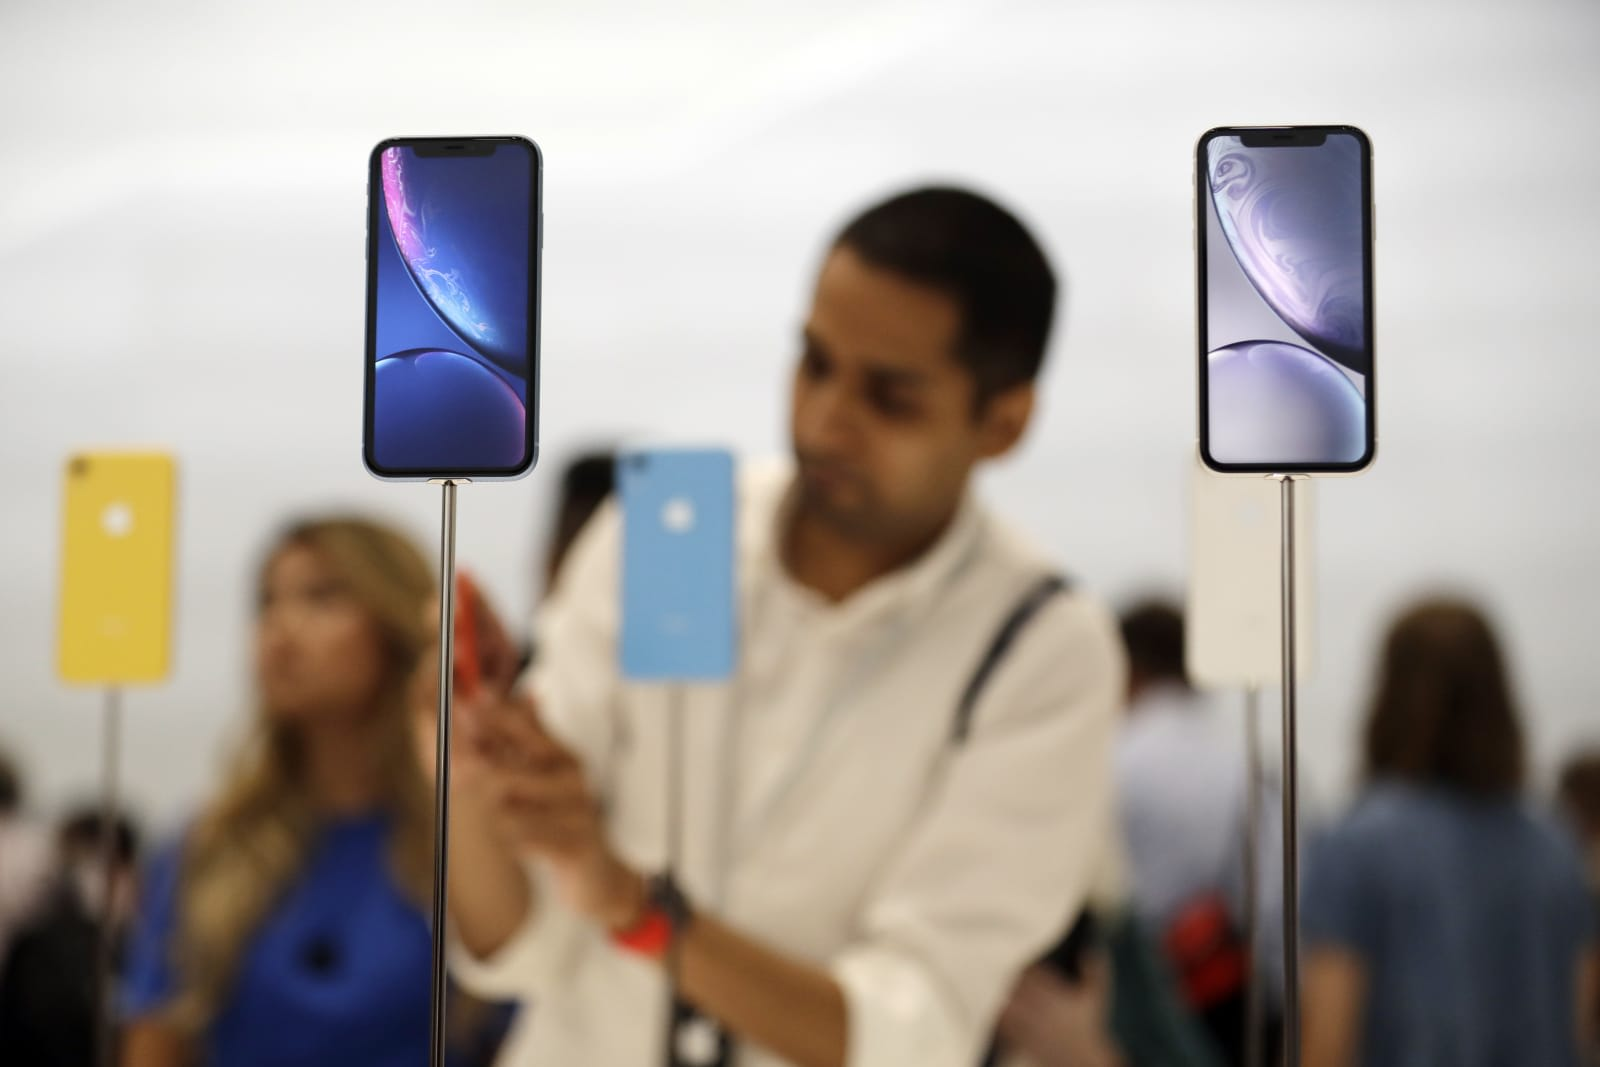 Apple in 'advanced' discussions to buy Intel's modem division